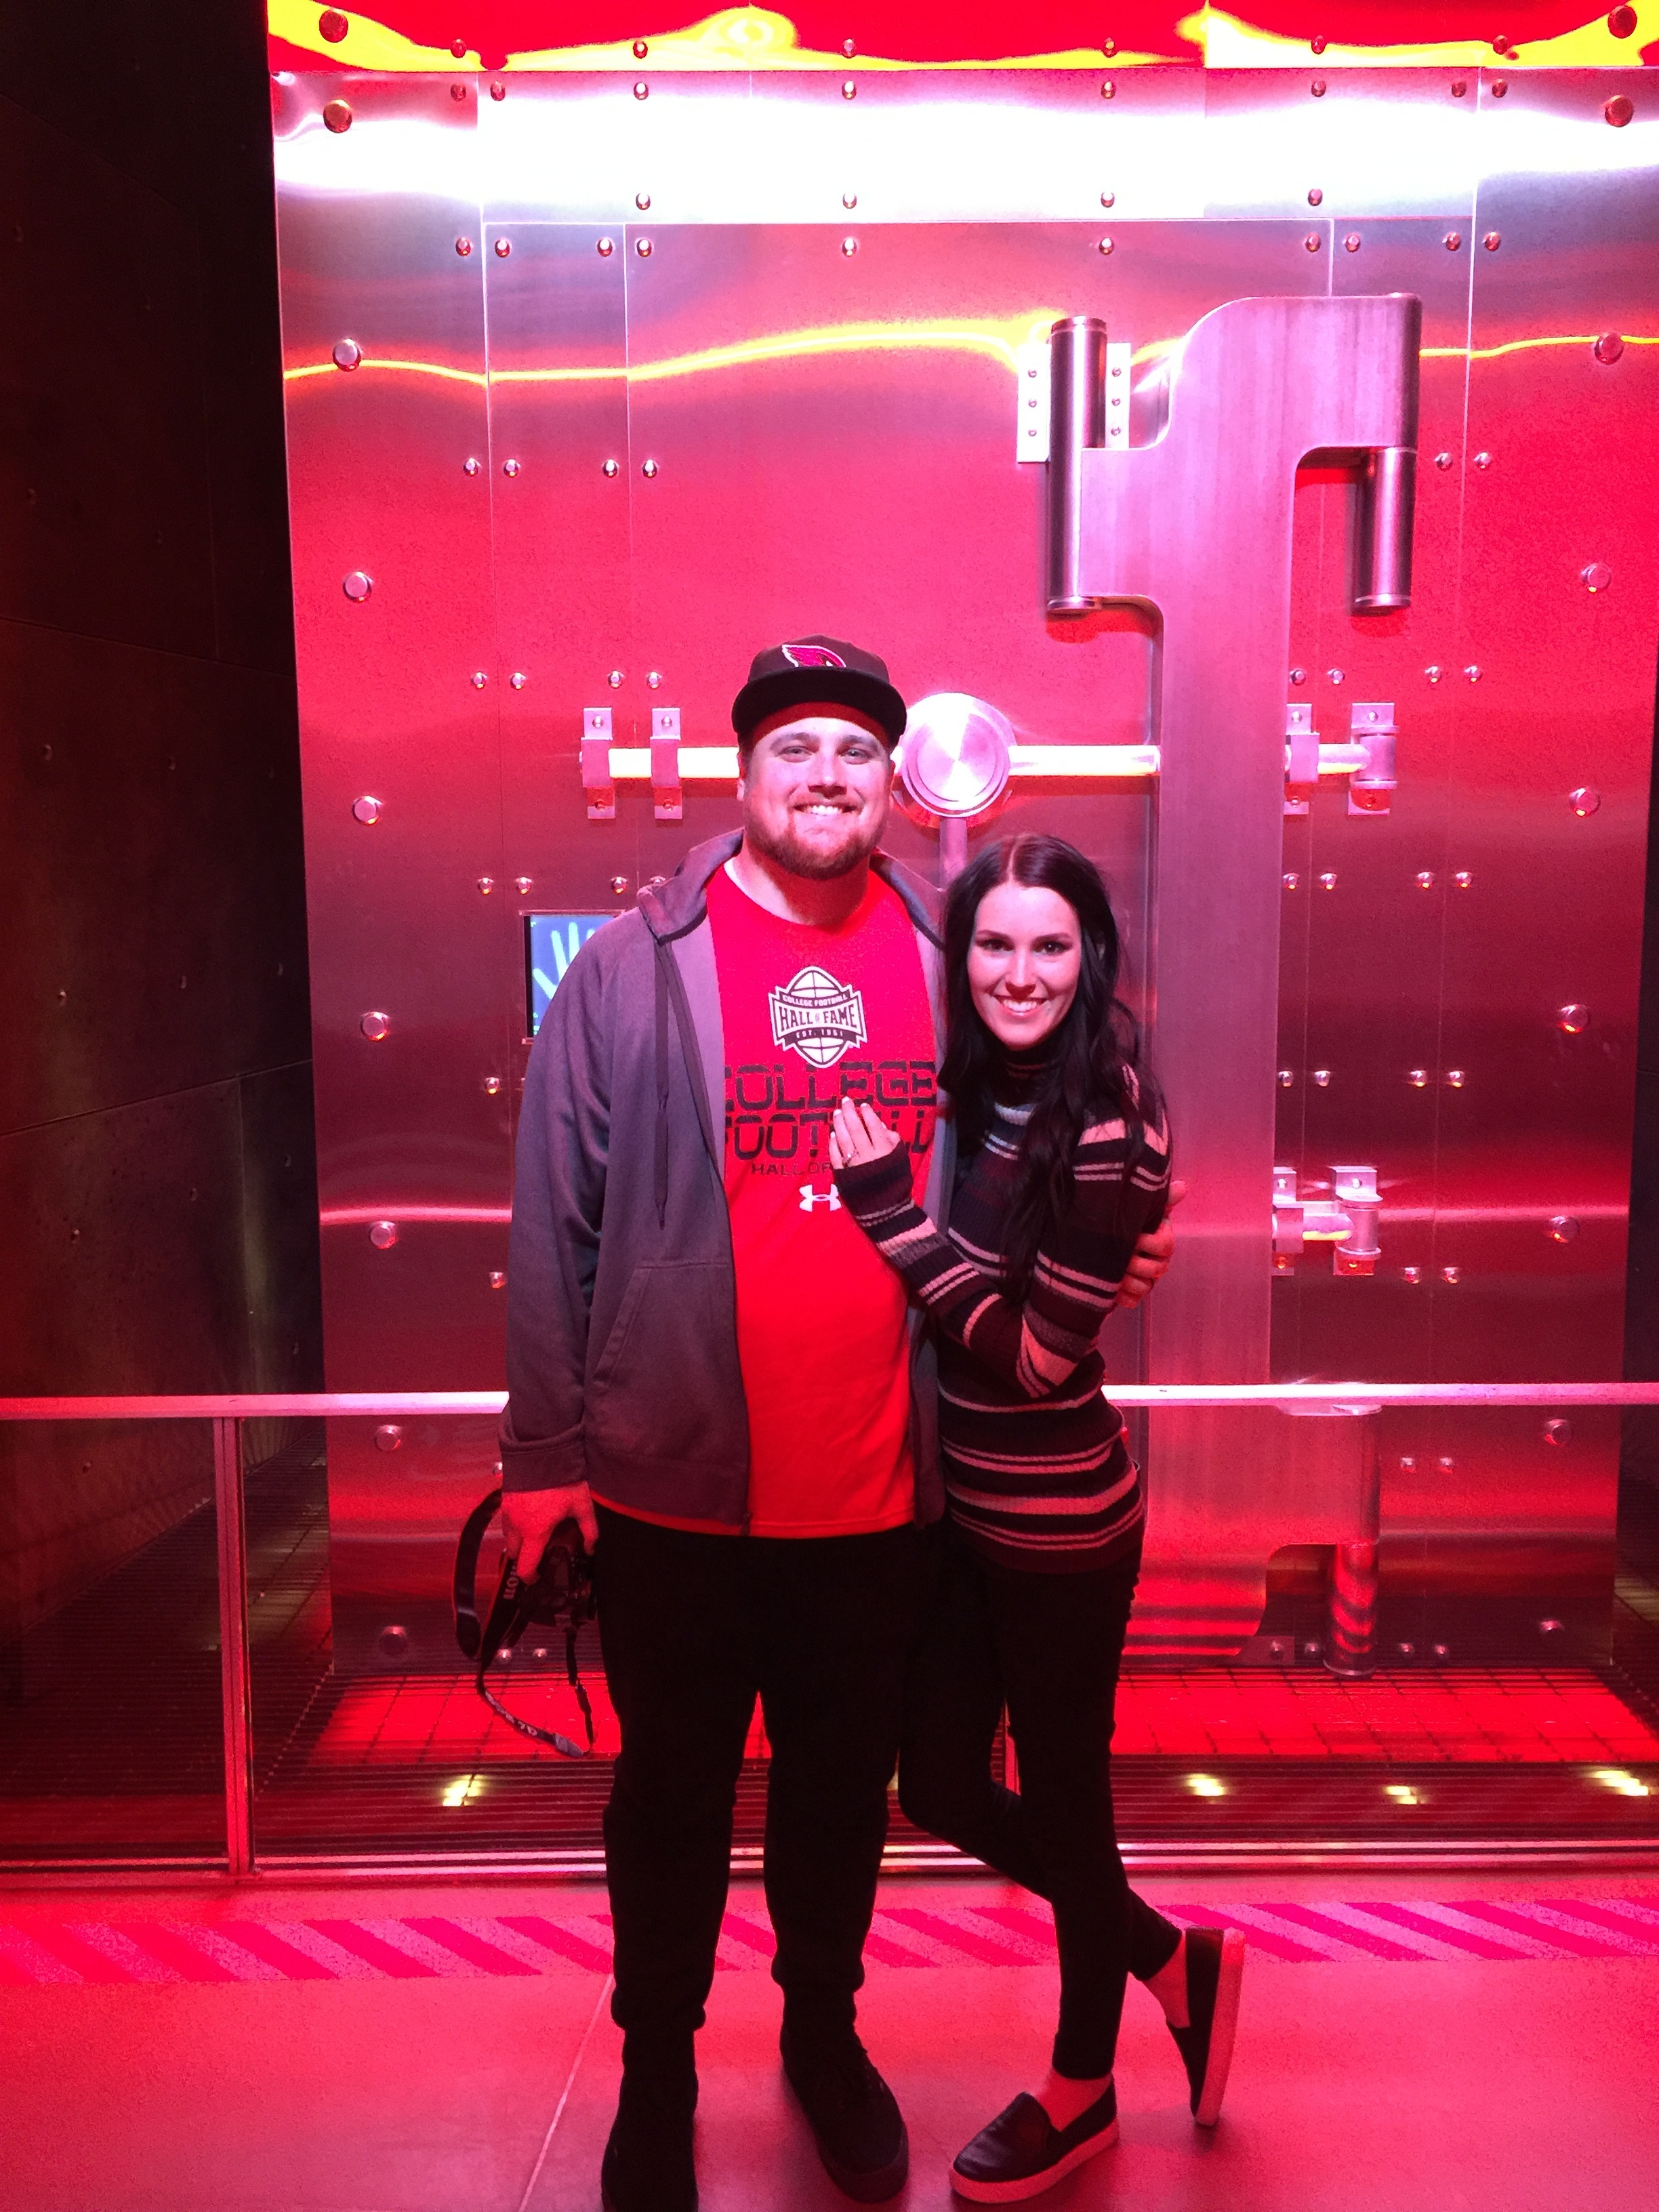 Us at the Coca-Cola Factory behind the Vault were they keep the recipe!